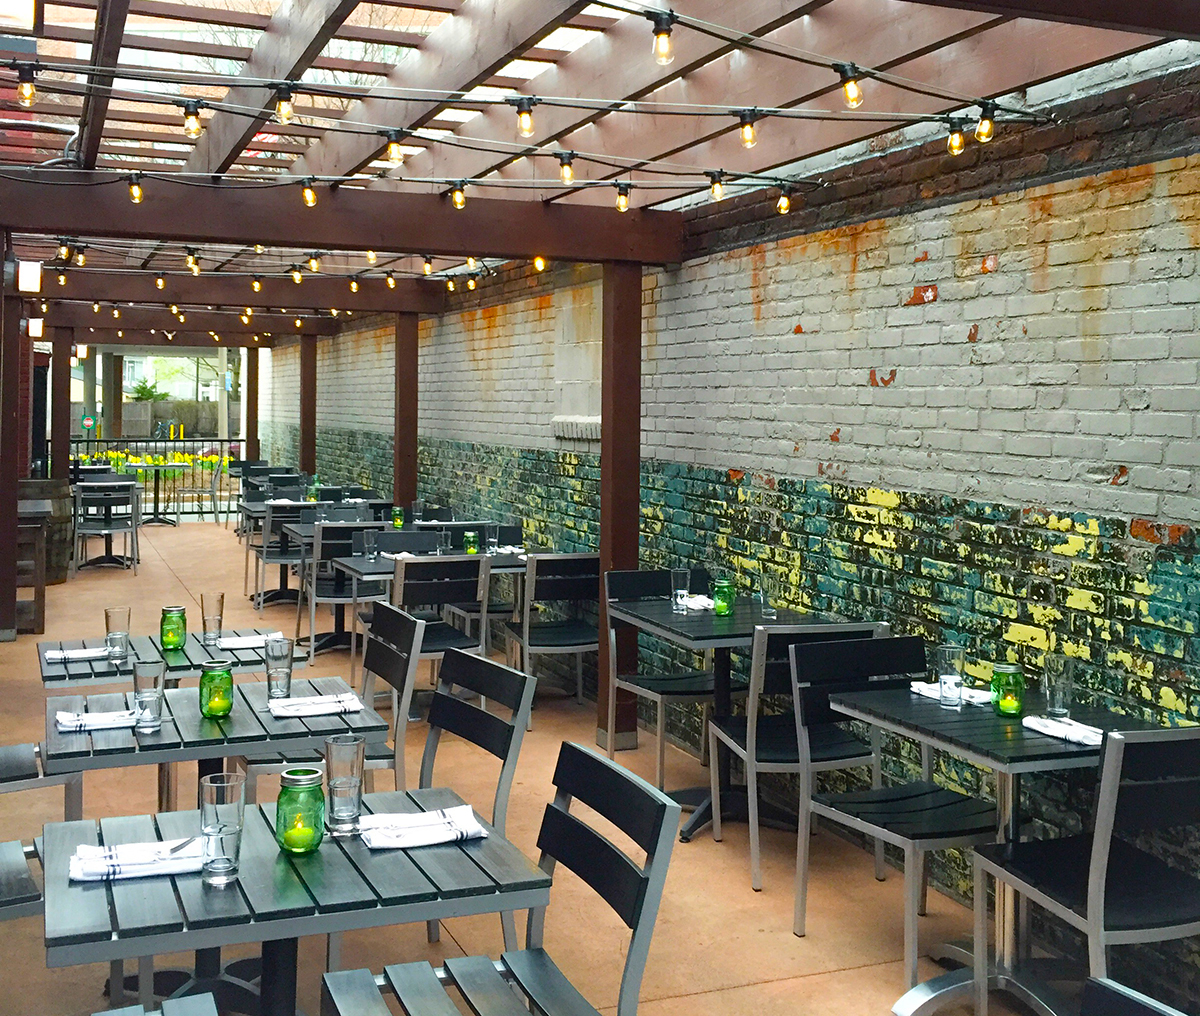 Emejing restaurant patio design ideas pictures interior for Best outdoor dining